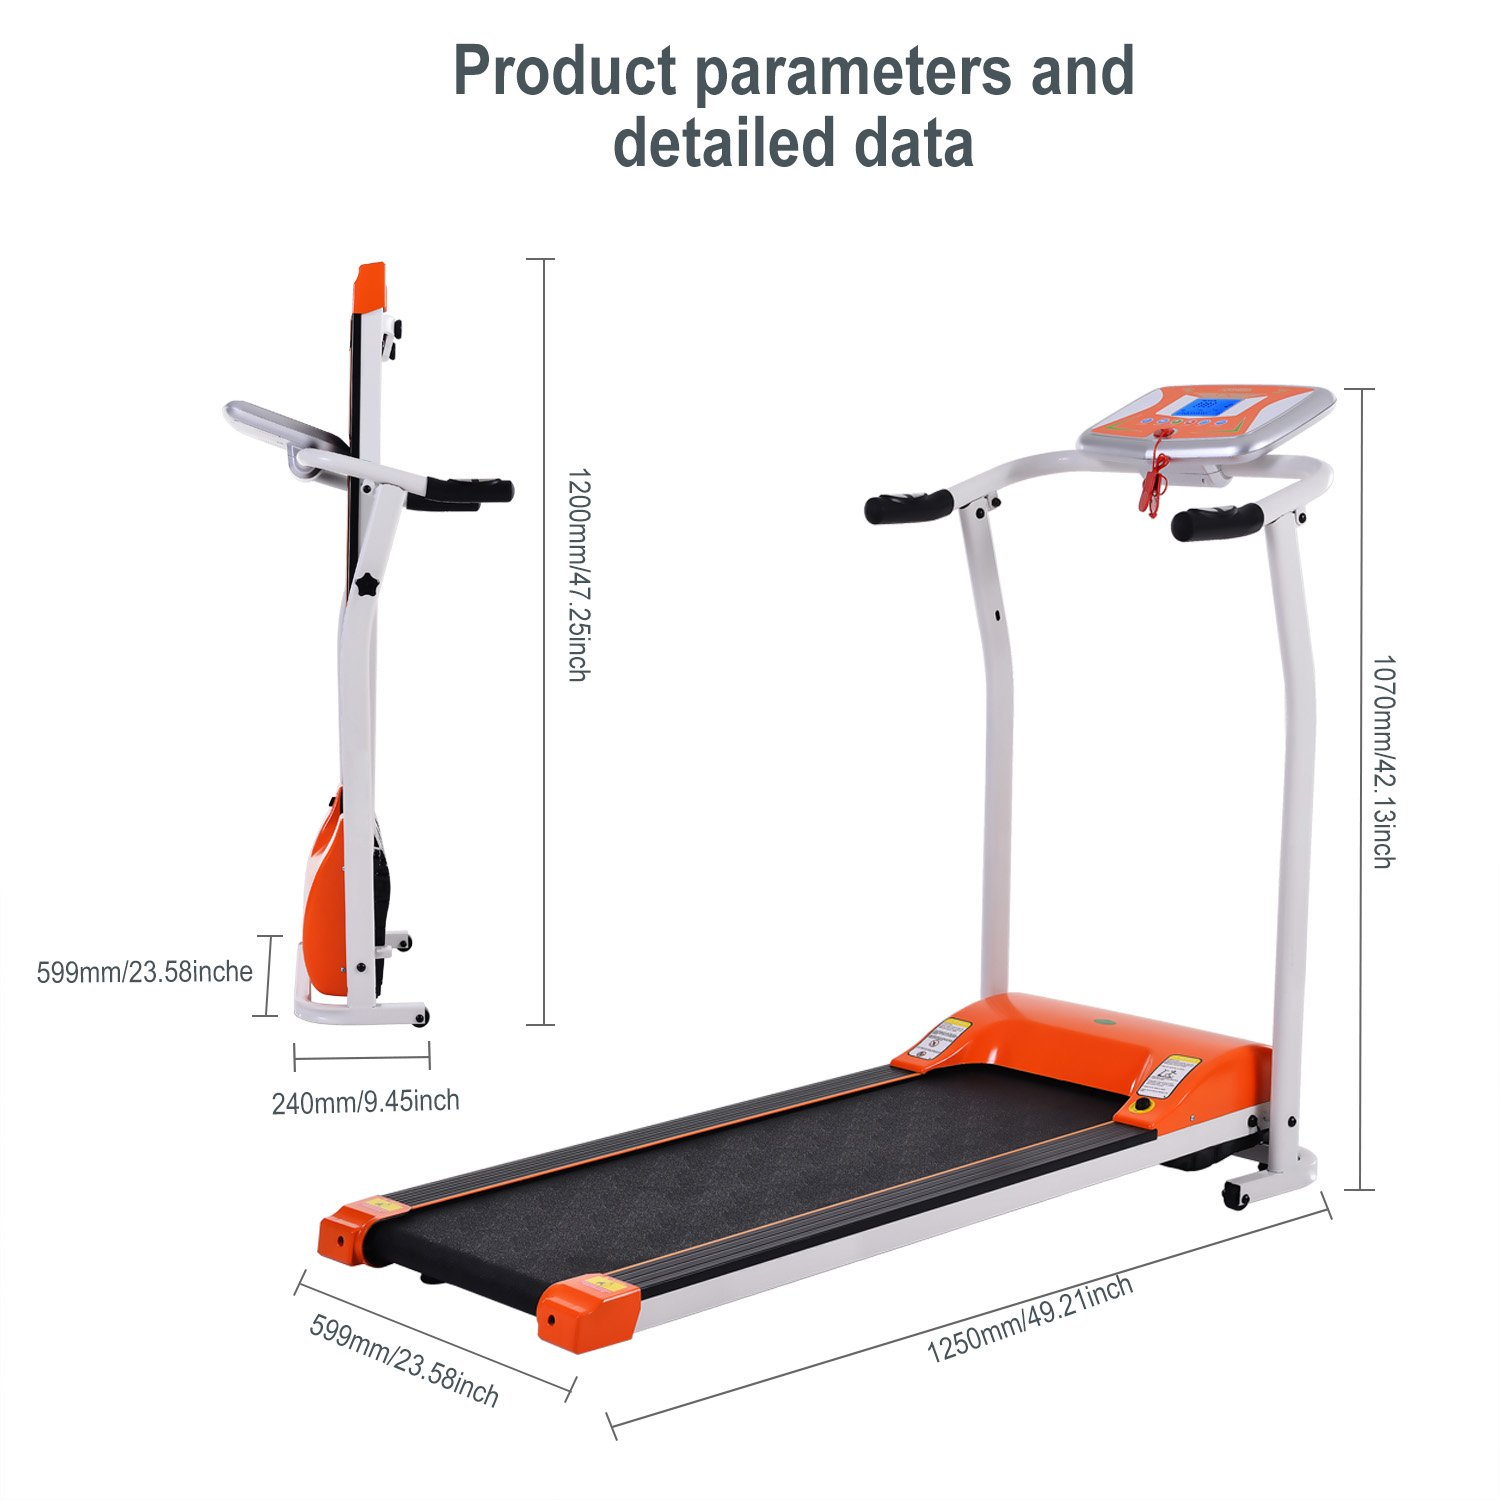 Folding Electric Treadmill Running Machine Power Motorized for Home Gym Exercise Walking Fitness (1.5 HP - Orange - Not Incline) by ncient (Image #5)